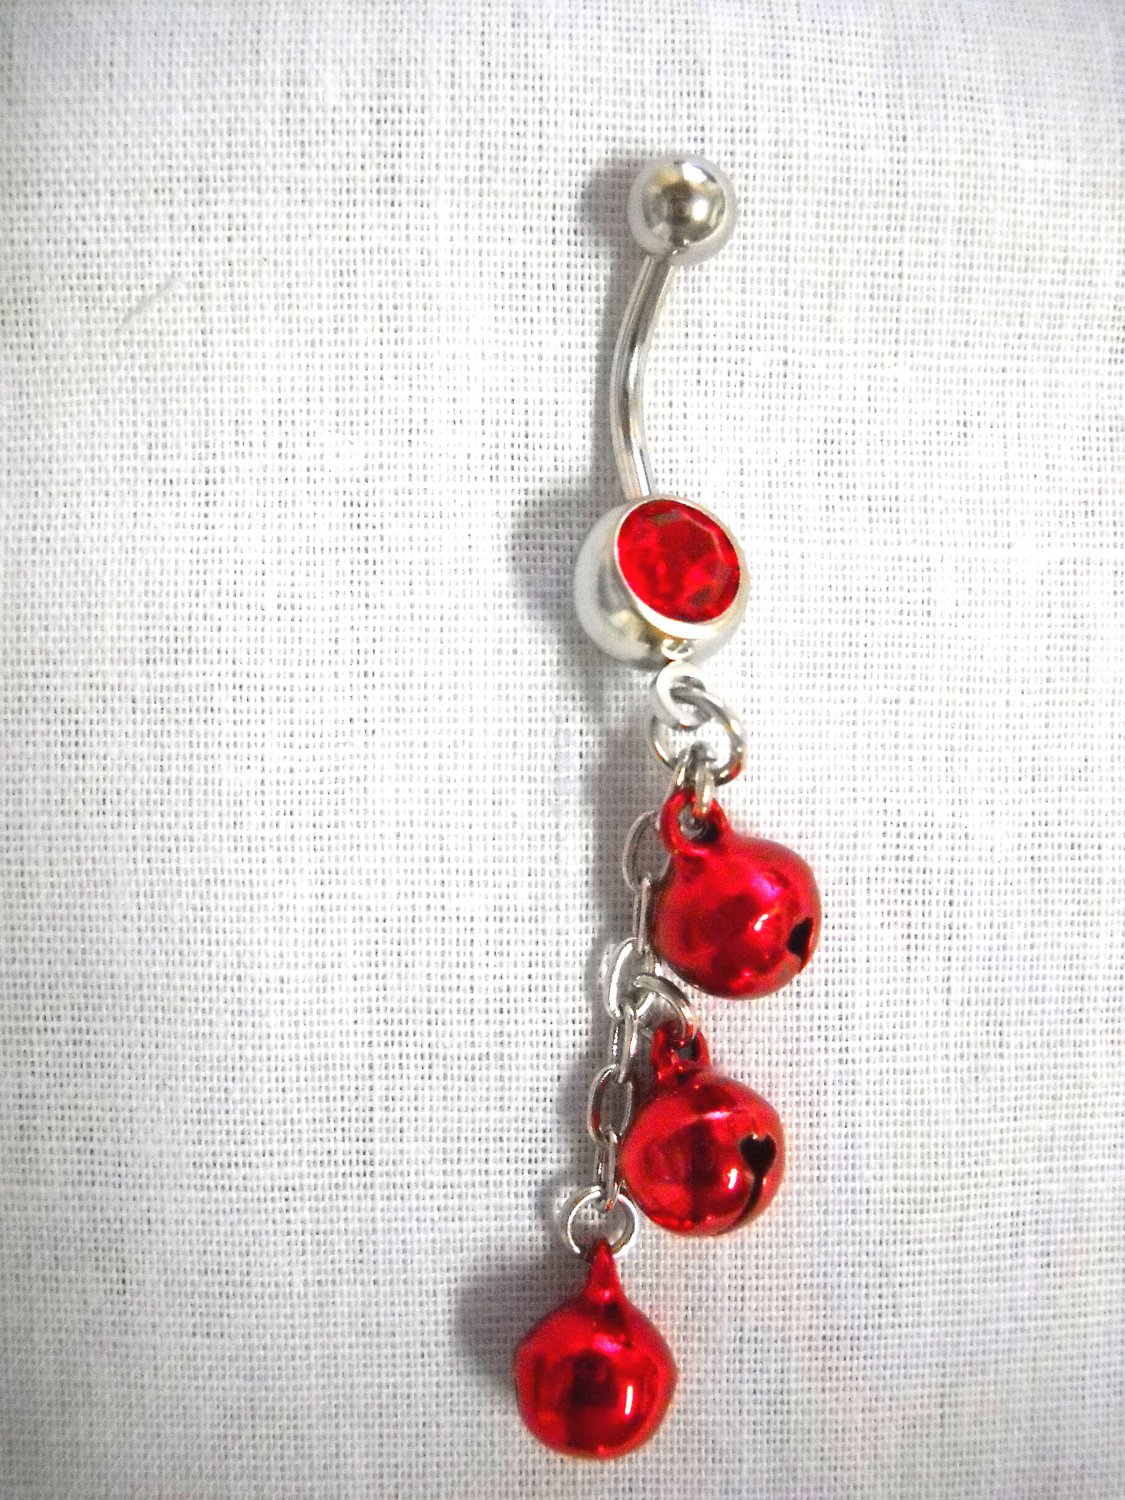 BOLLYWOOD DANCE RED DANGLING JINGLE BELLS CHAIN ON 14g RED CZ NAVEL RING